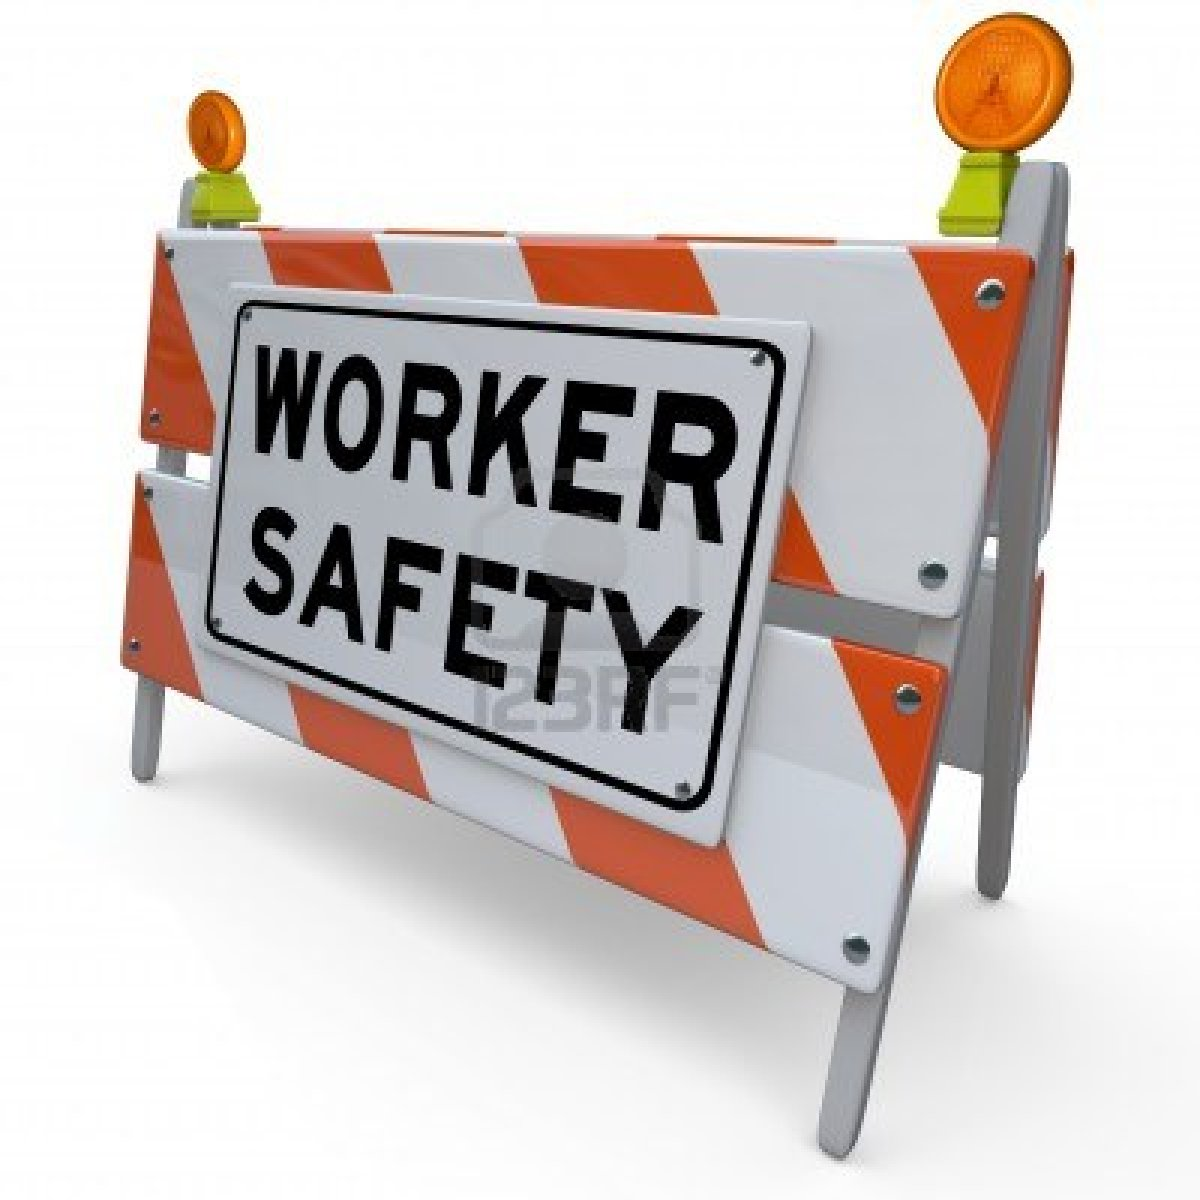 Labor Safety Global Worker Safety Certification A Practical Solution For